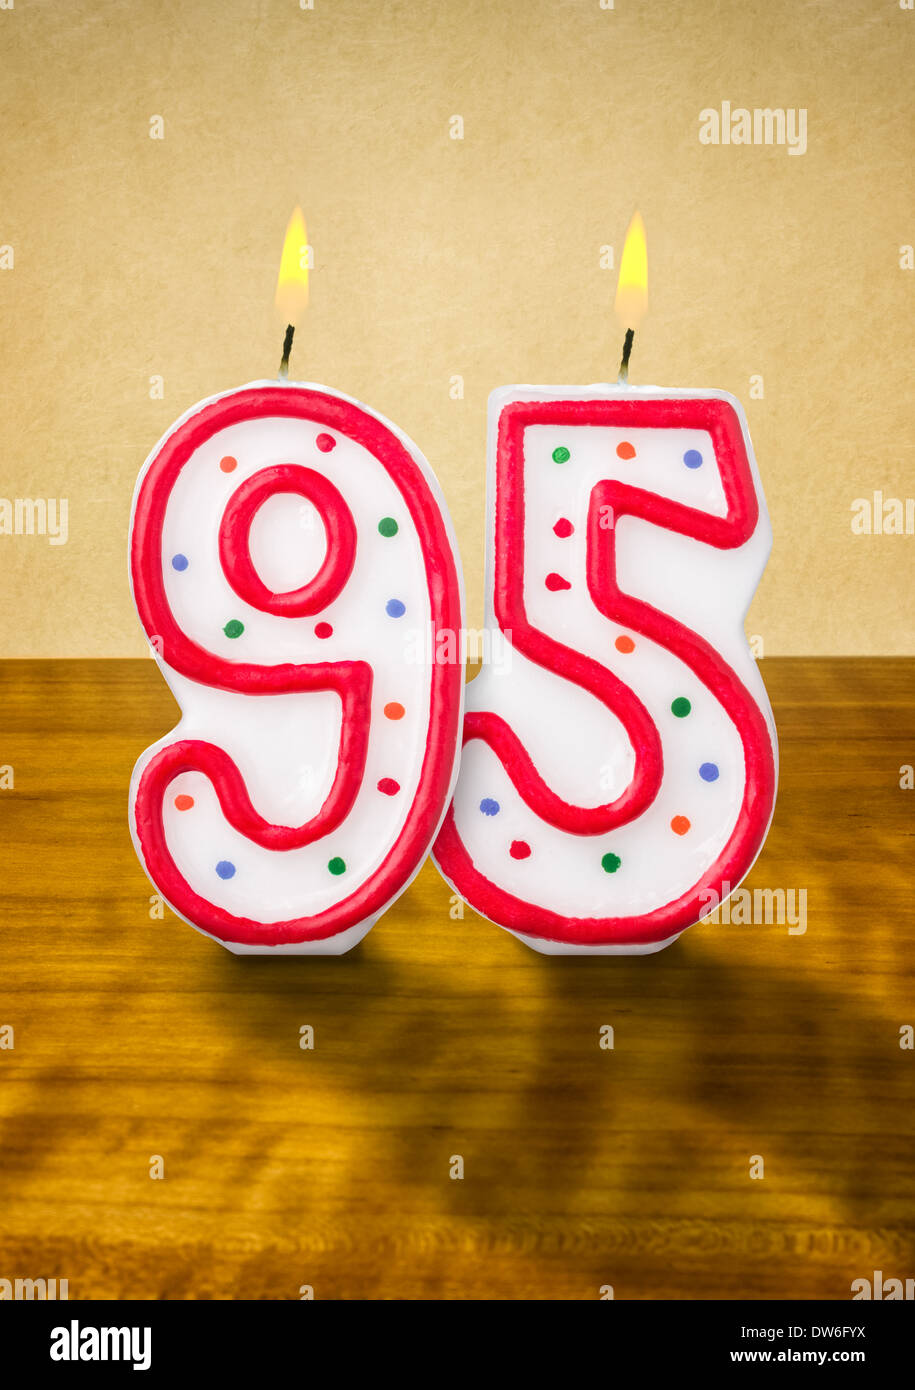 Disney 3D Numbered Birthday Candles